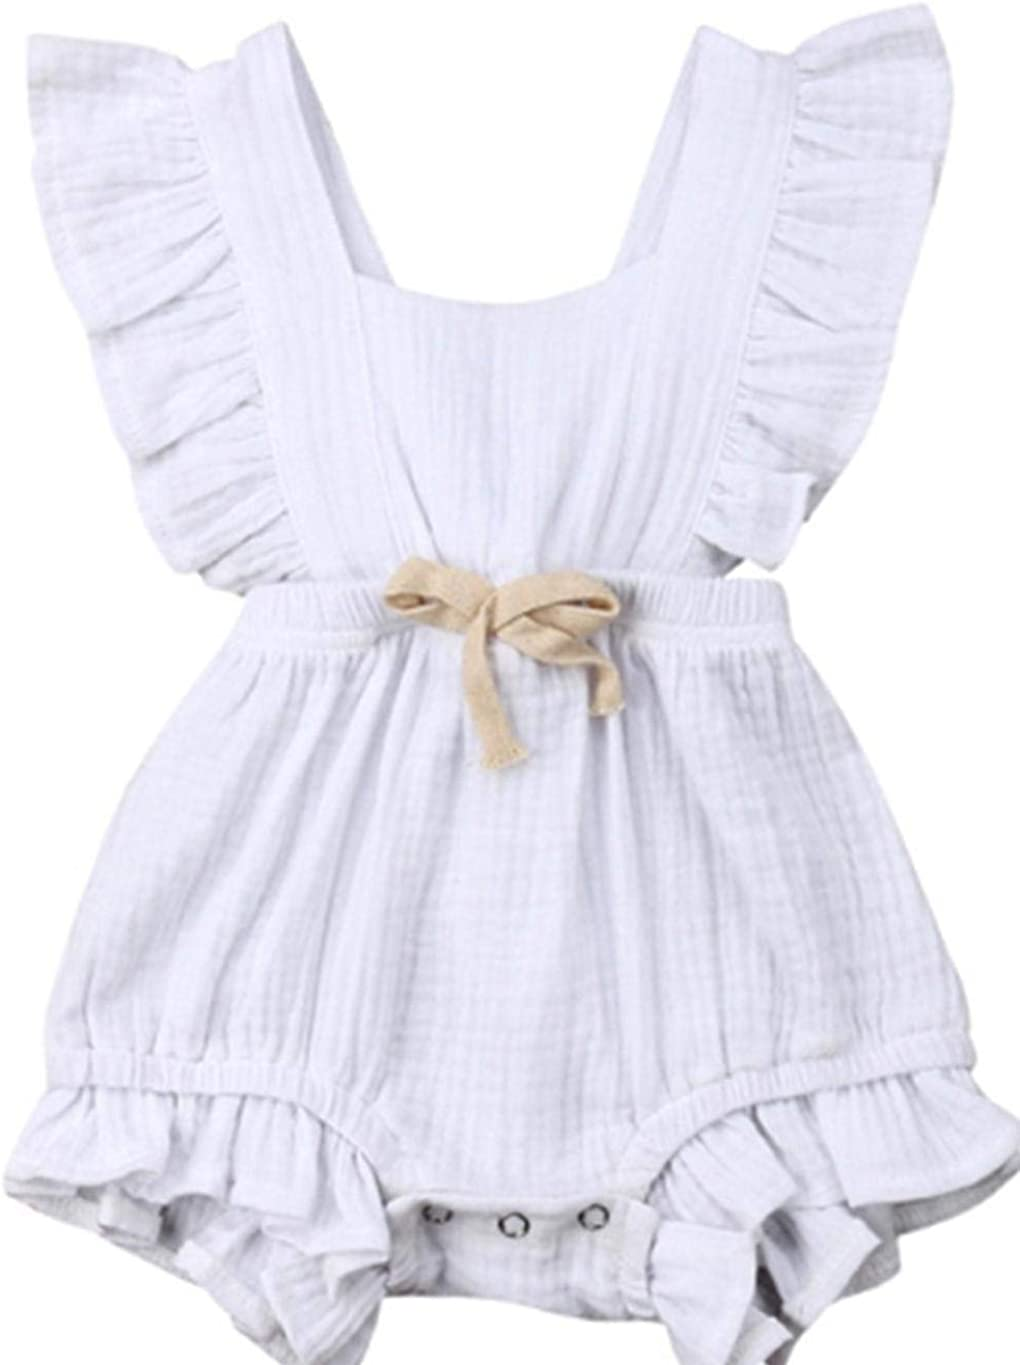 sasaply New Baby Girls Bodysuits Newborn Floral Ruffle Climbing Romper Rompers